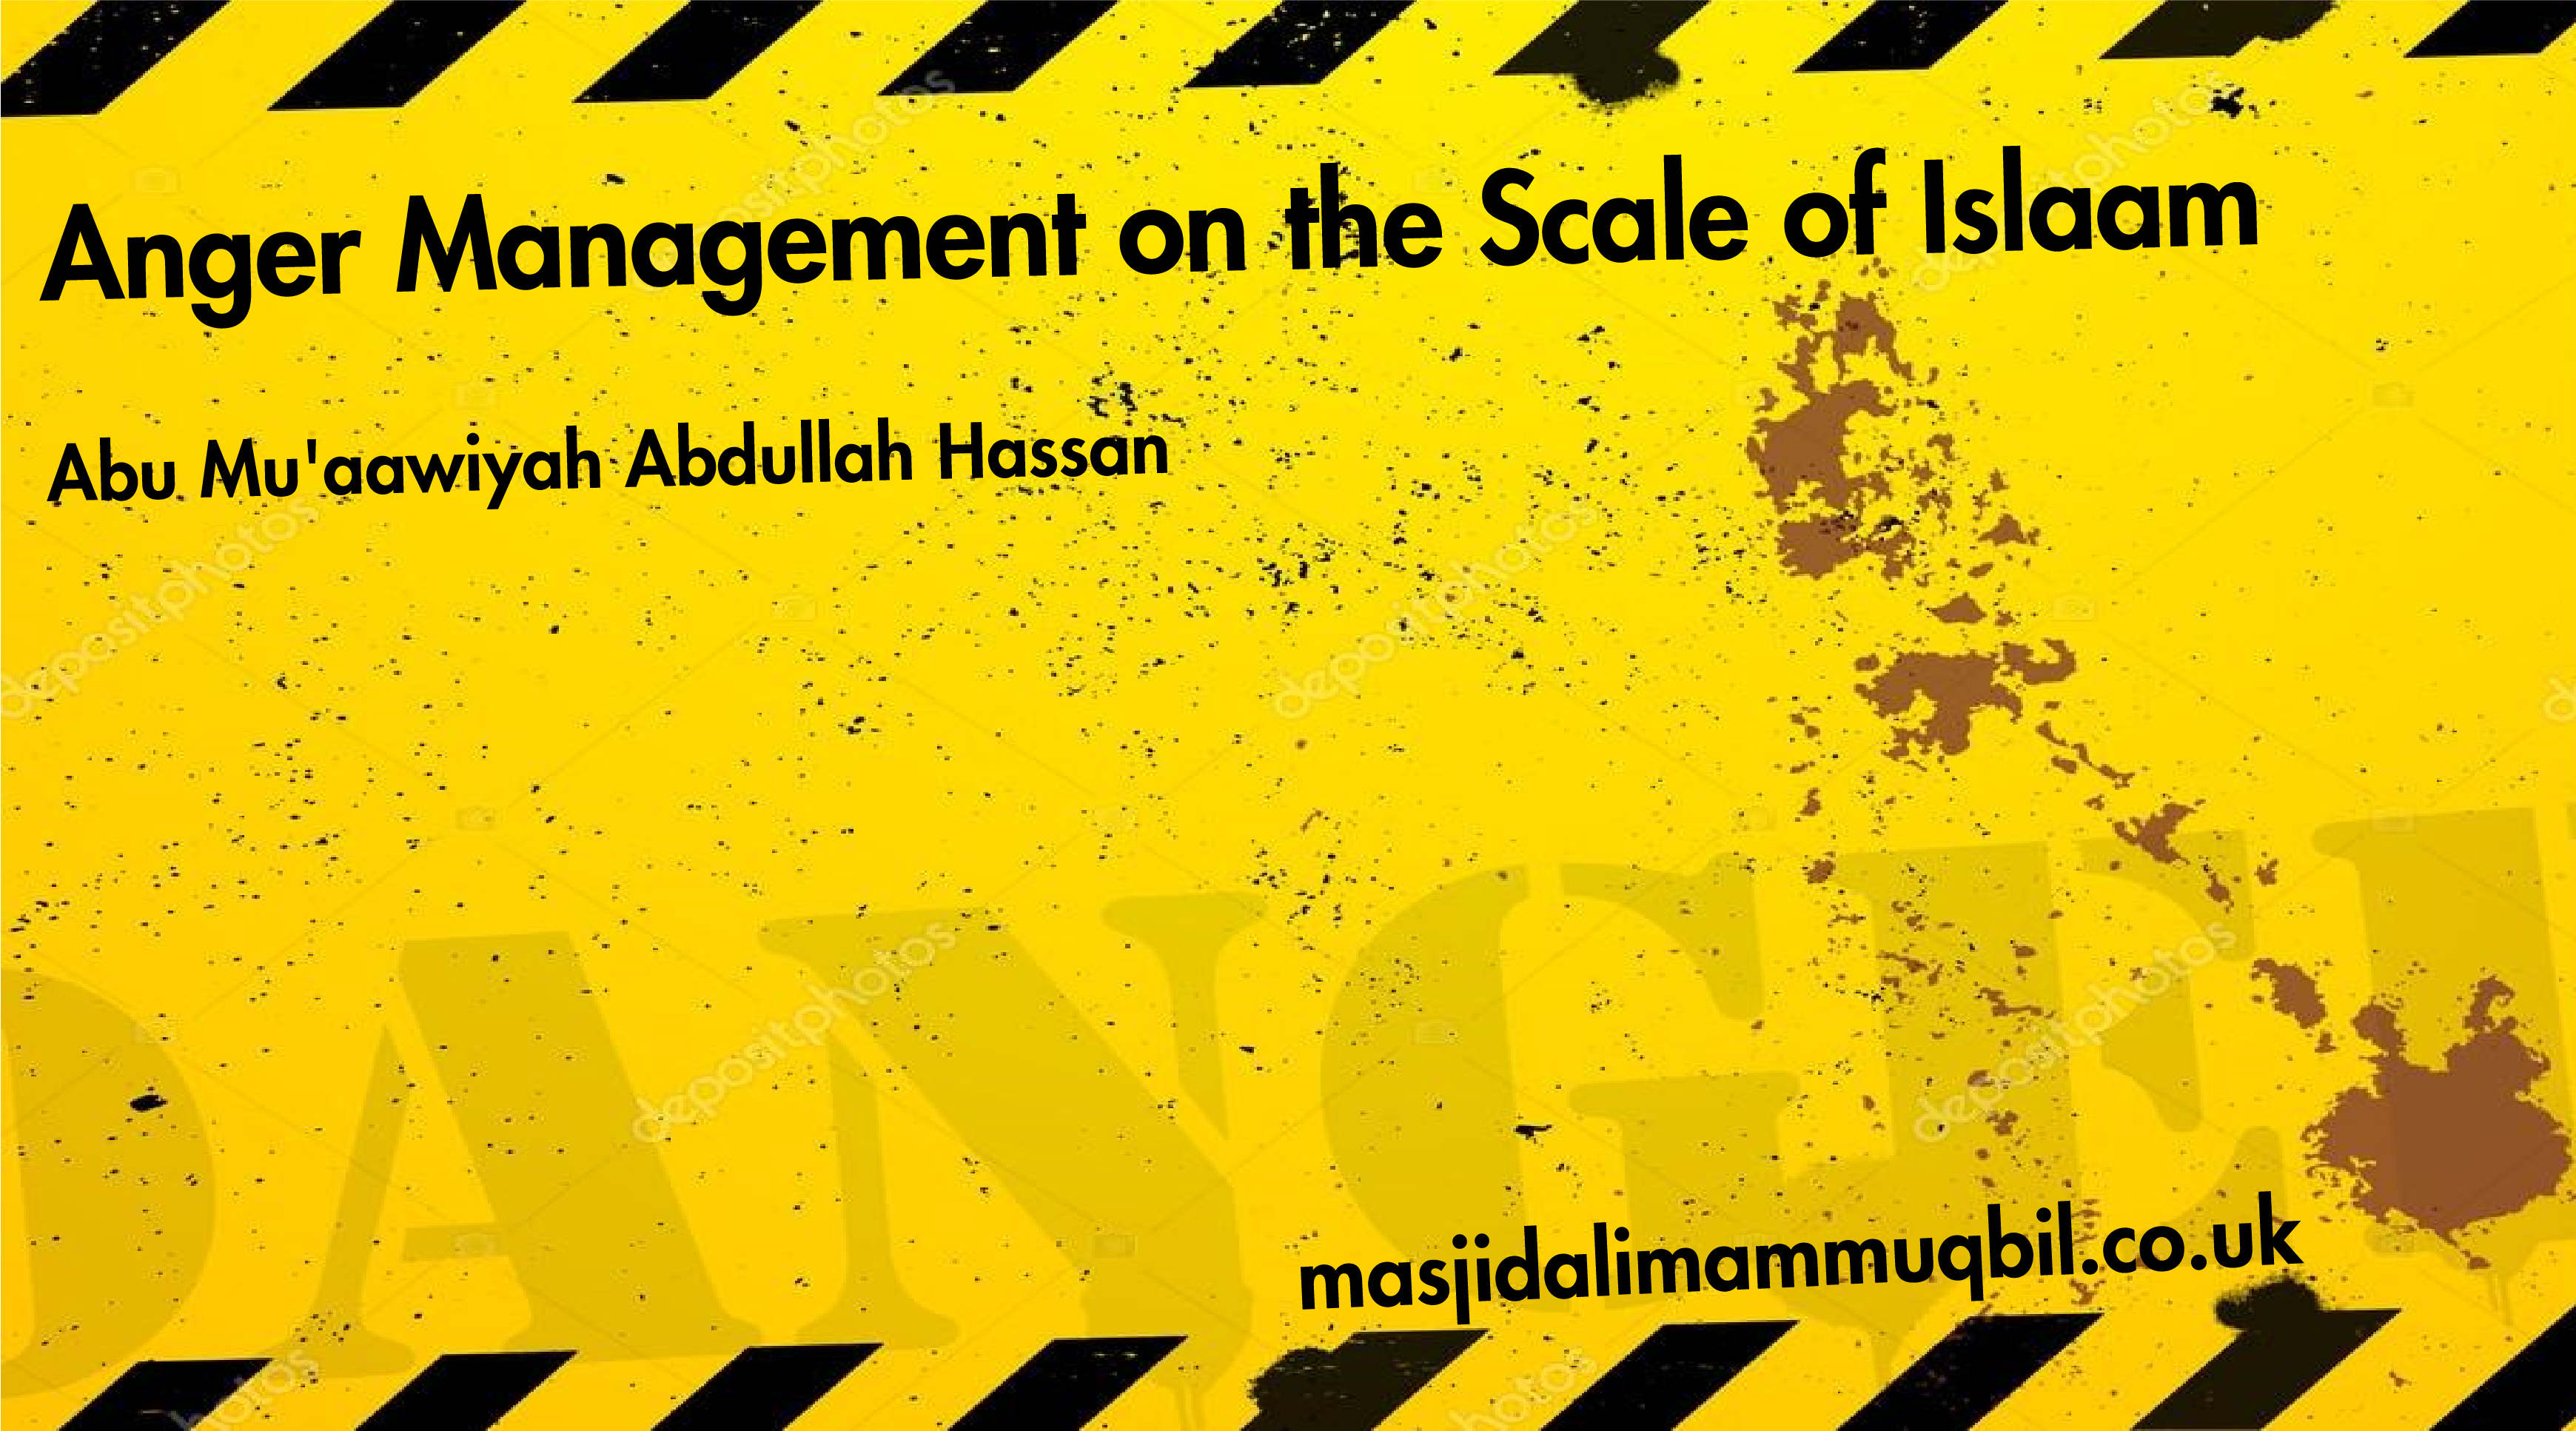 Anger Management on the Scale of Islaam